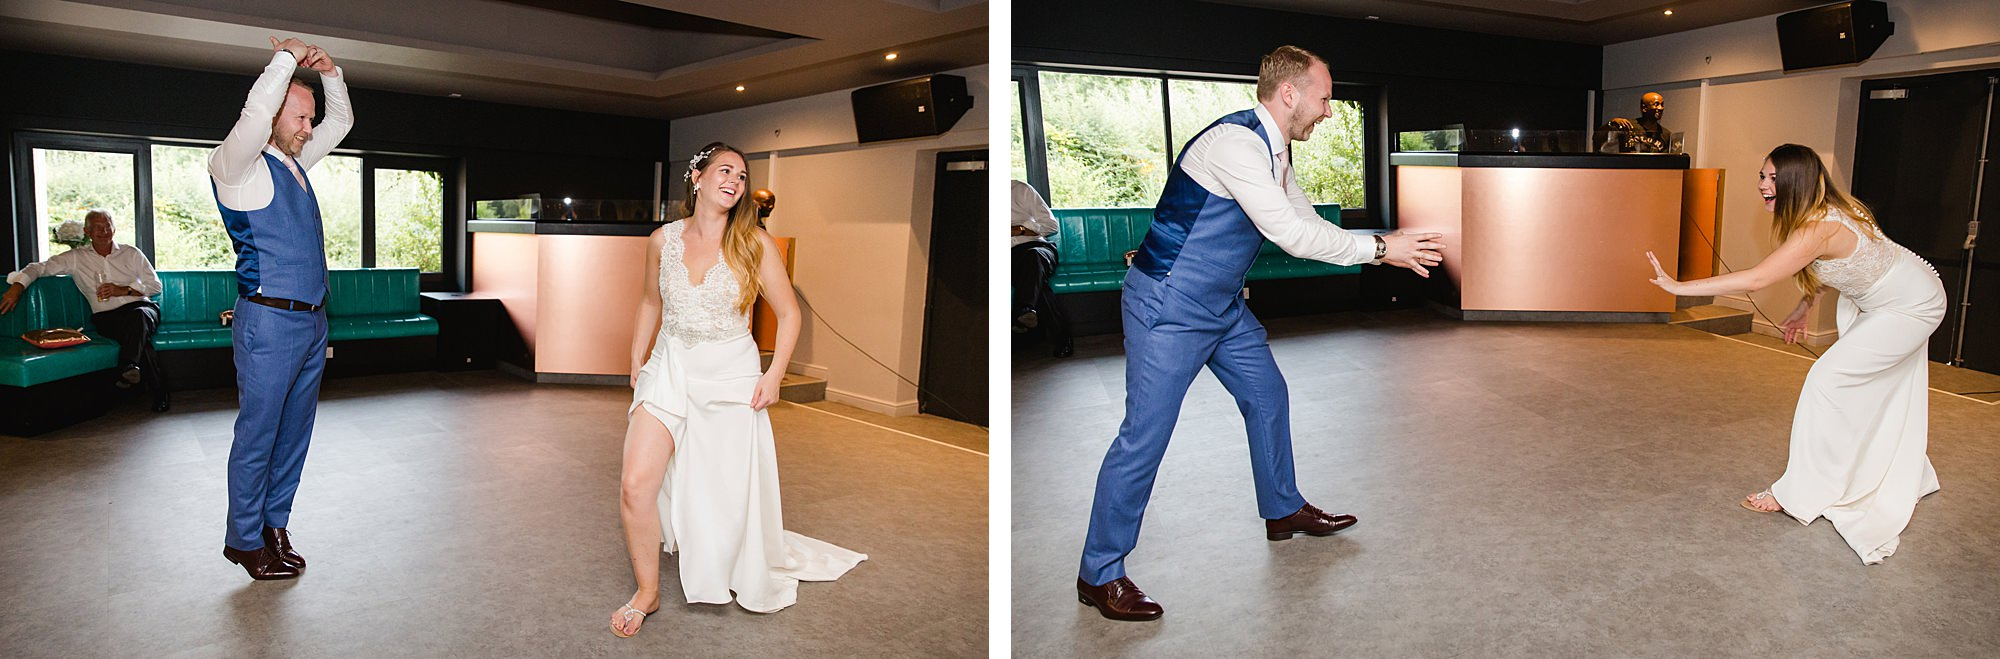 Writtle university college wedding funny picture of bride and groom before first dance